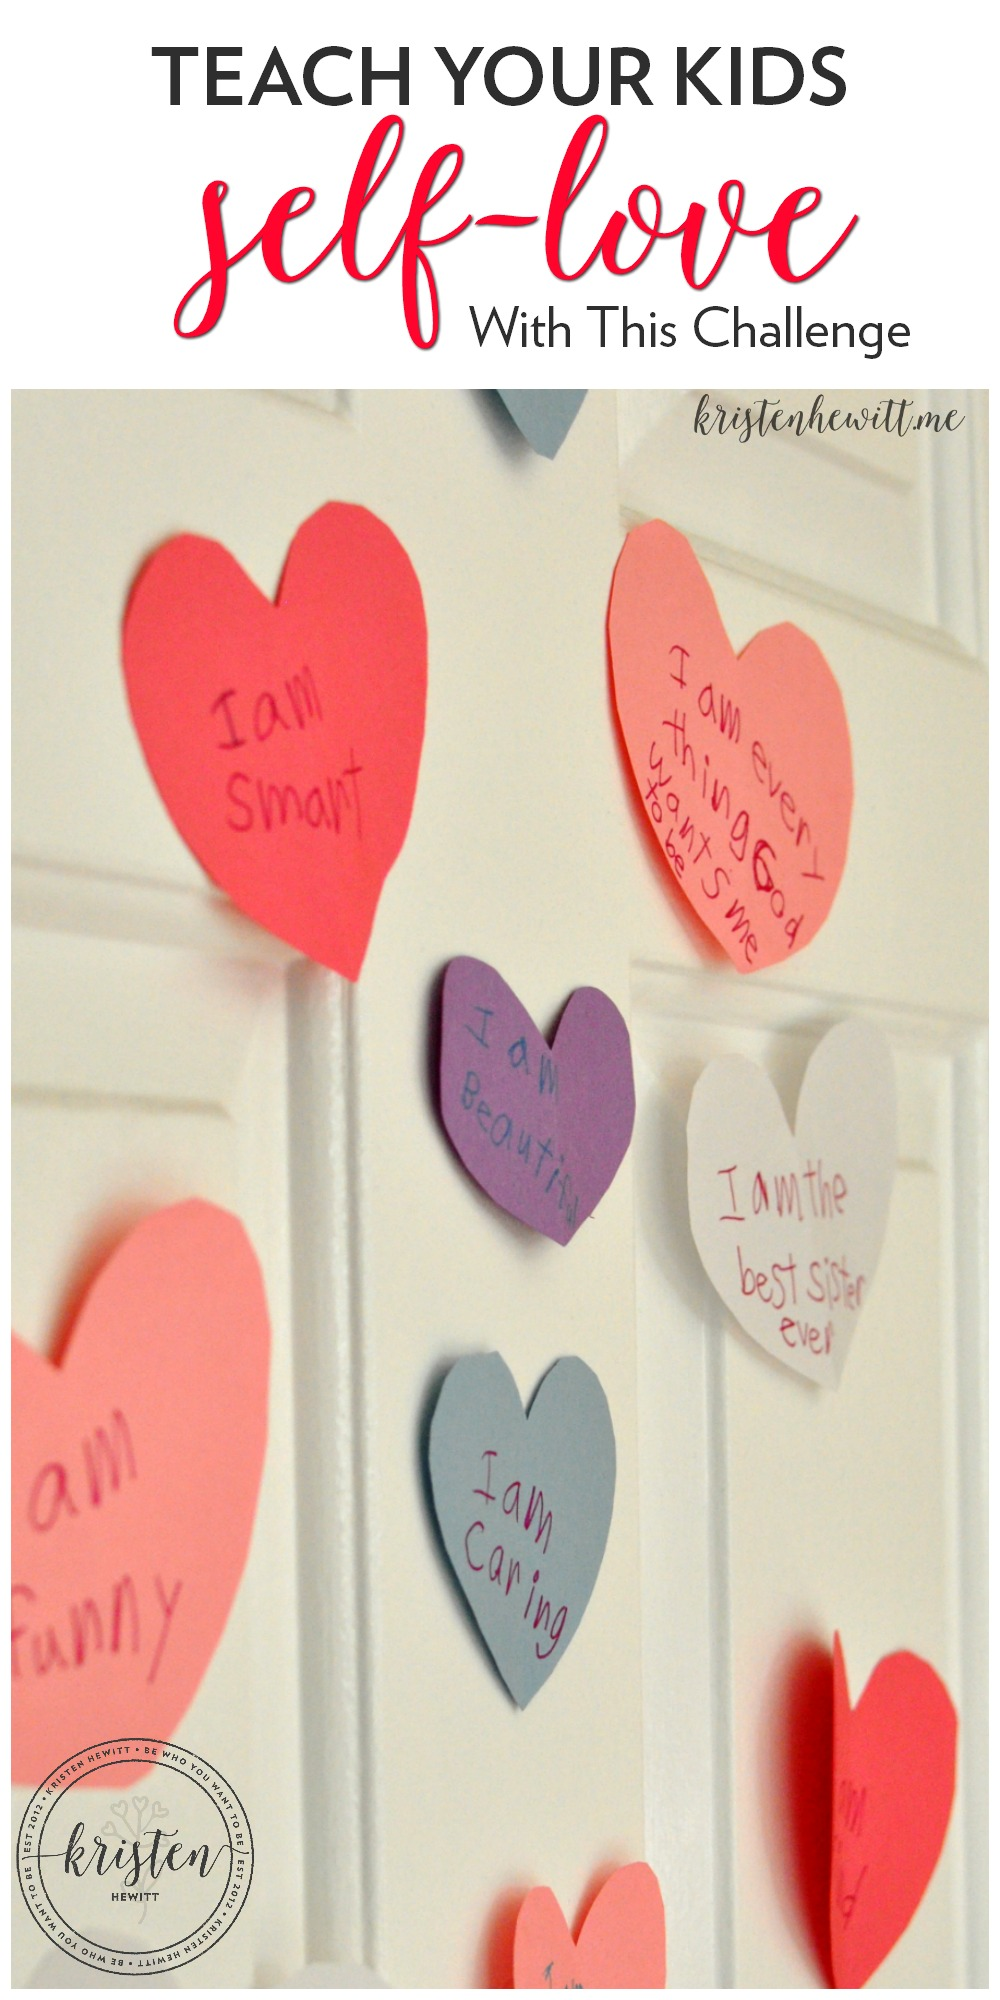 Do you want to inspire self-love into your kids and maybe yourself as well? Take the February self-love challenge and inspire yourself and your family.